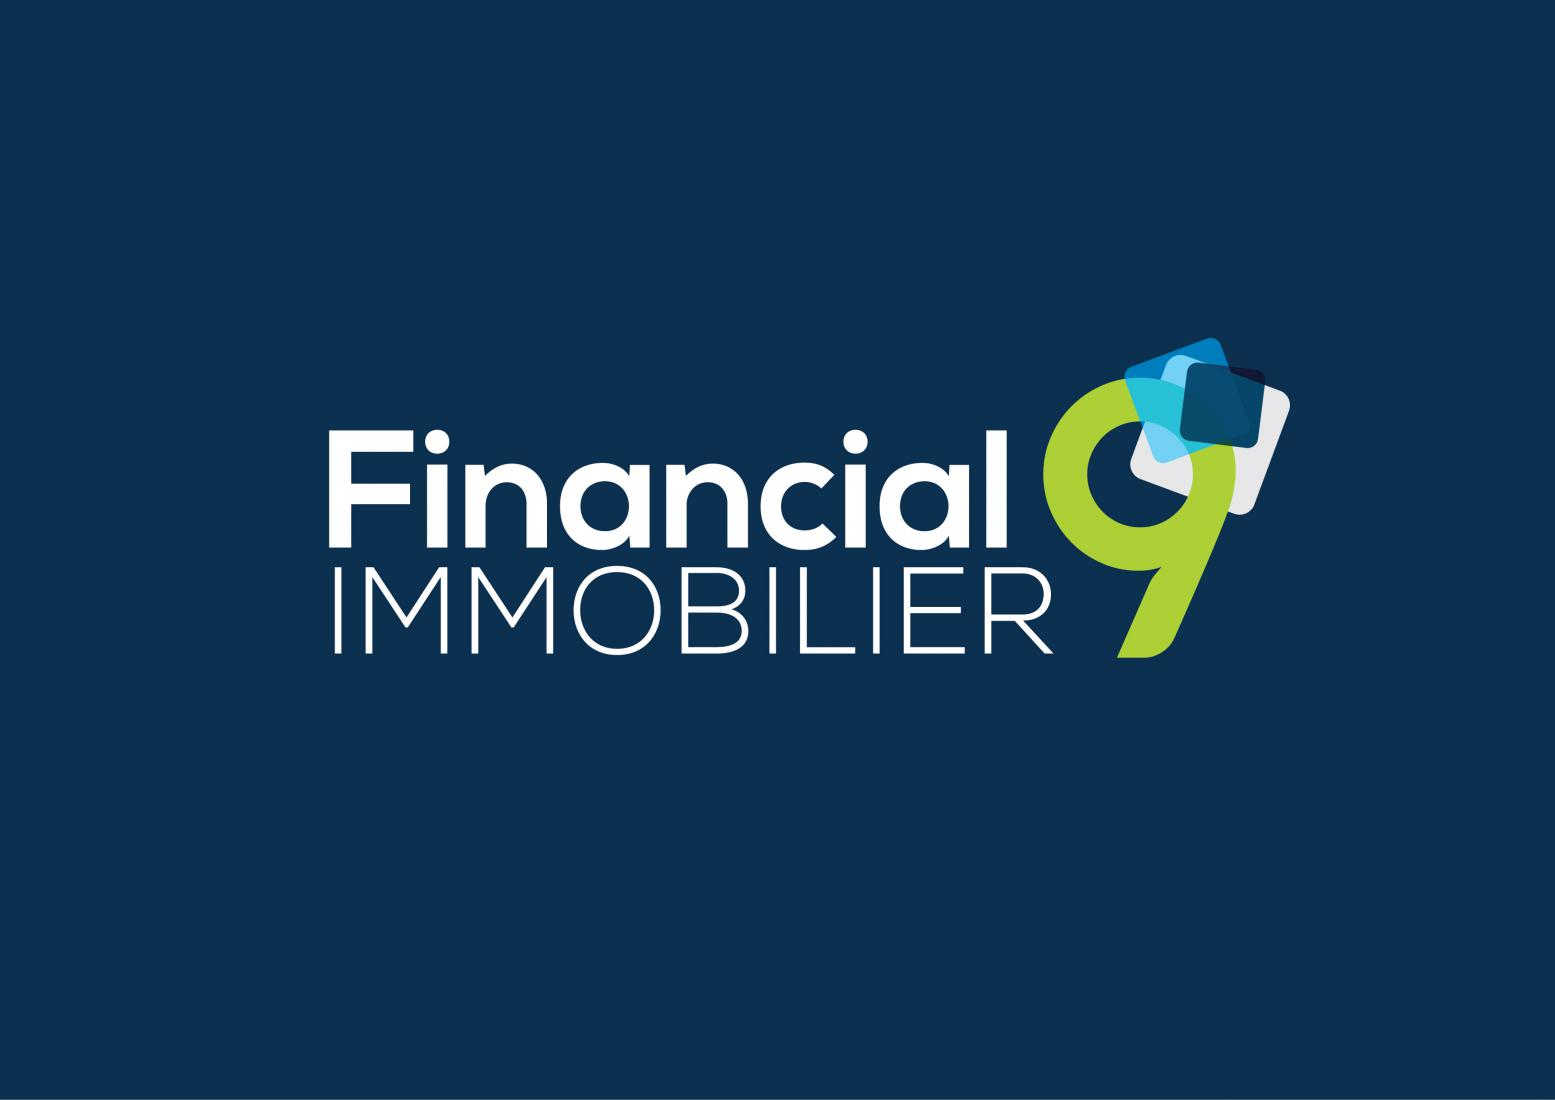 FINANCIAL IMMOBILIER 9